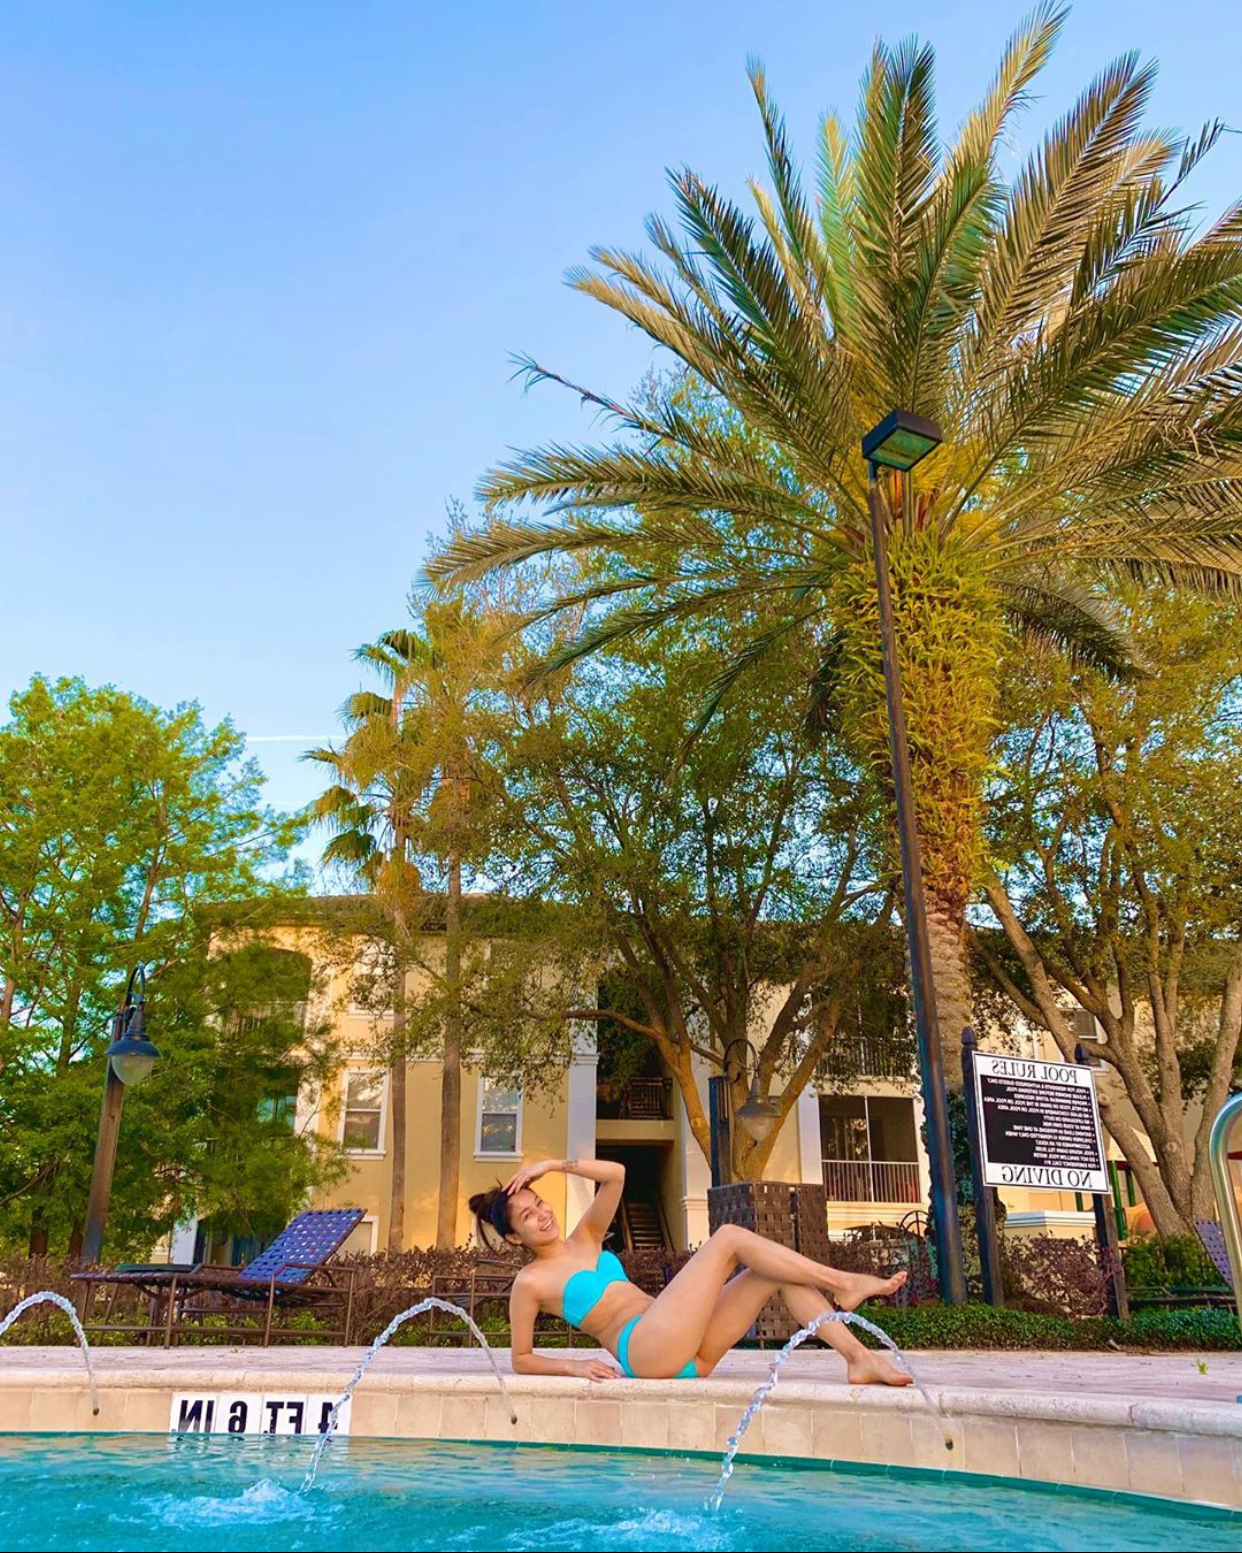 Woman sunbathing at an apartment complex in Orlando, Florida.